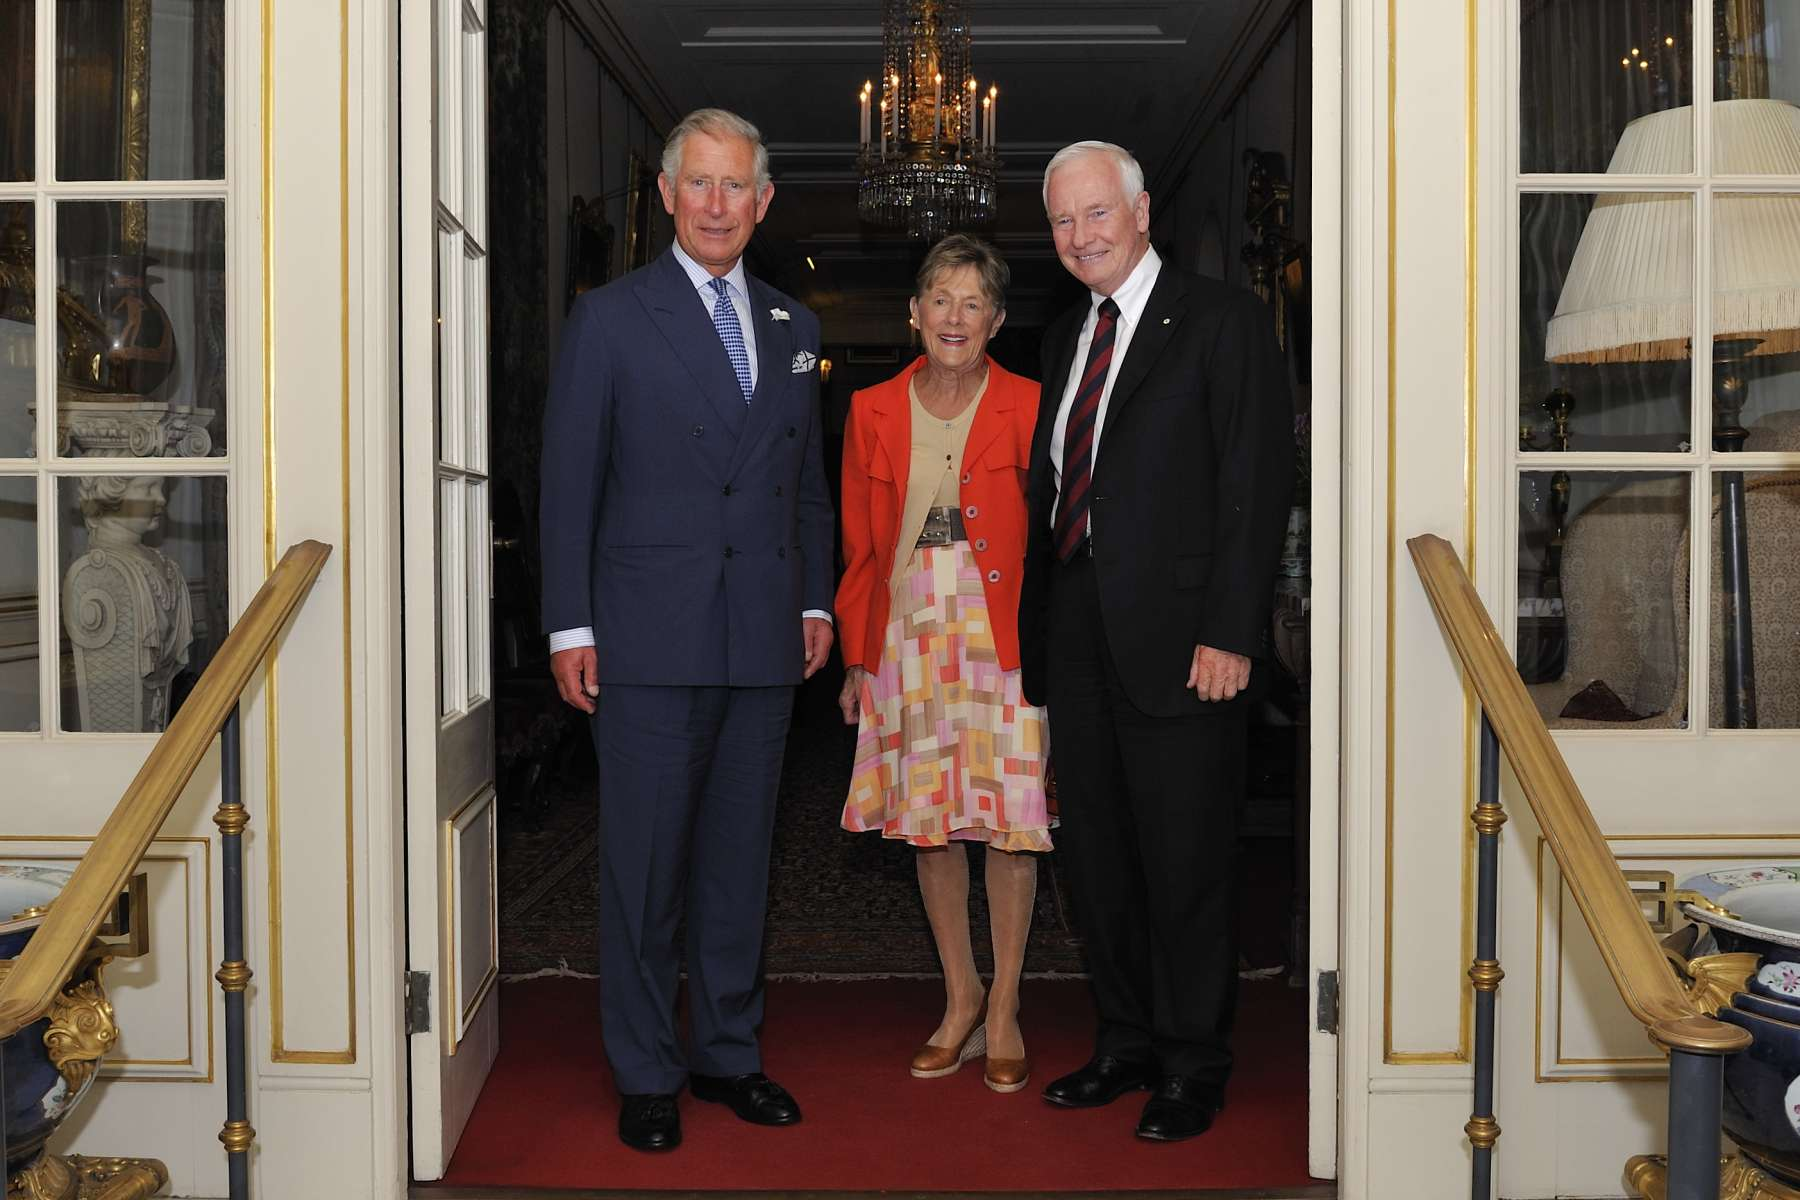 In the afternoon, Their Excellencies met with His Royal Highness The Prince of Wales at Clarence House.